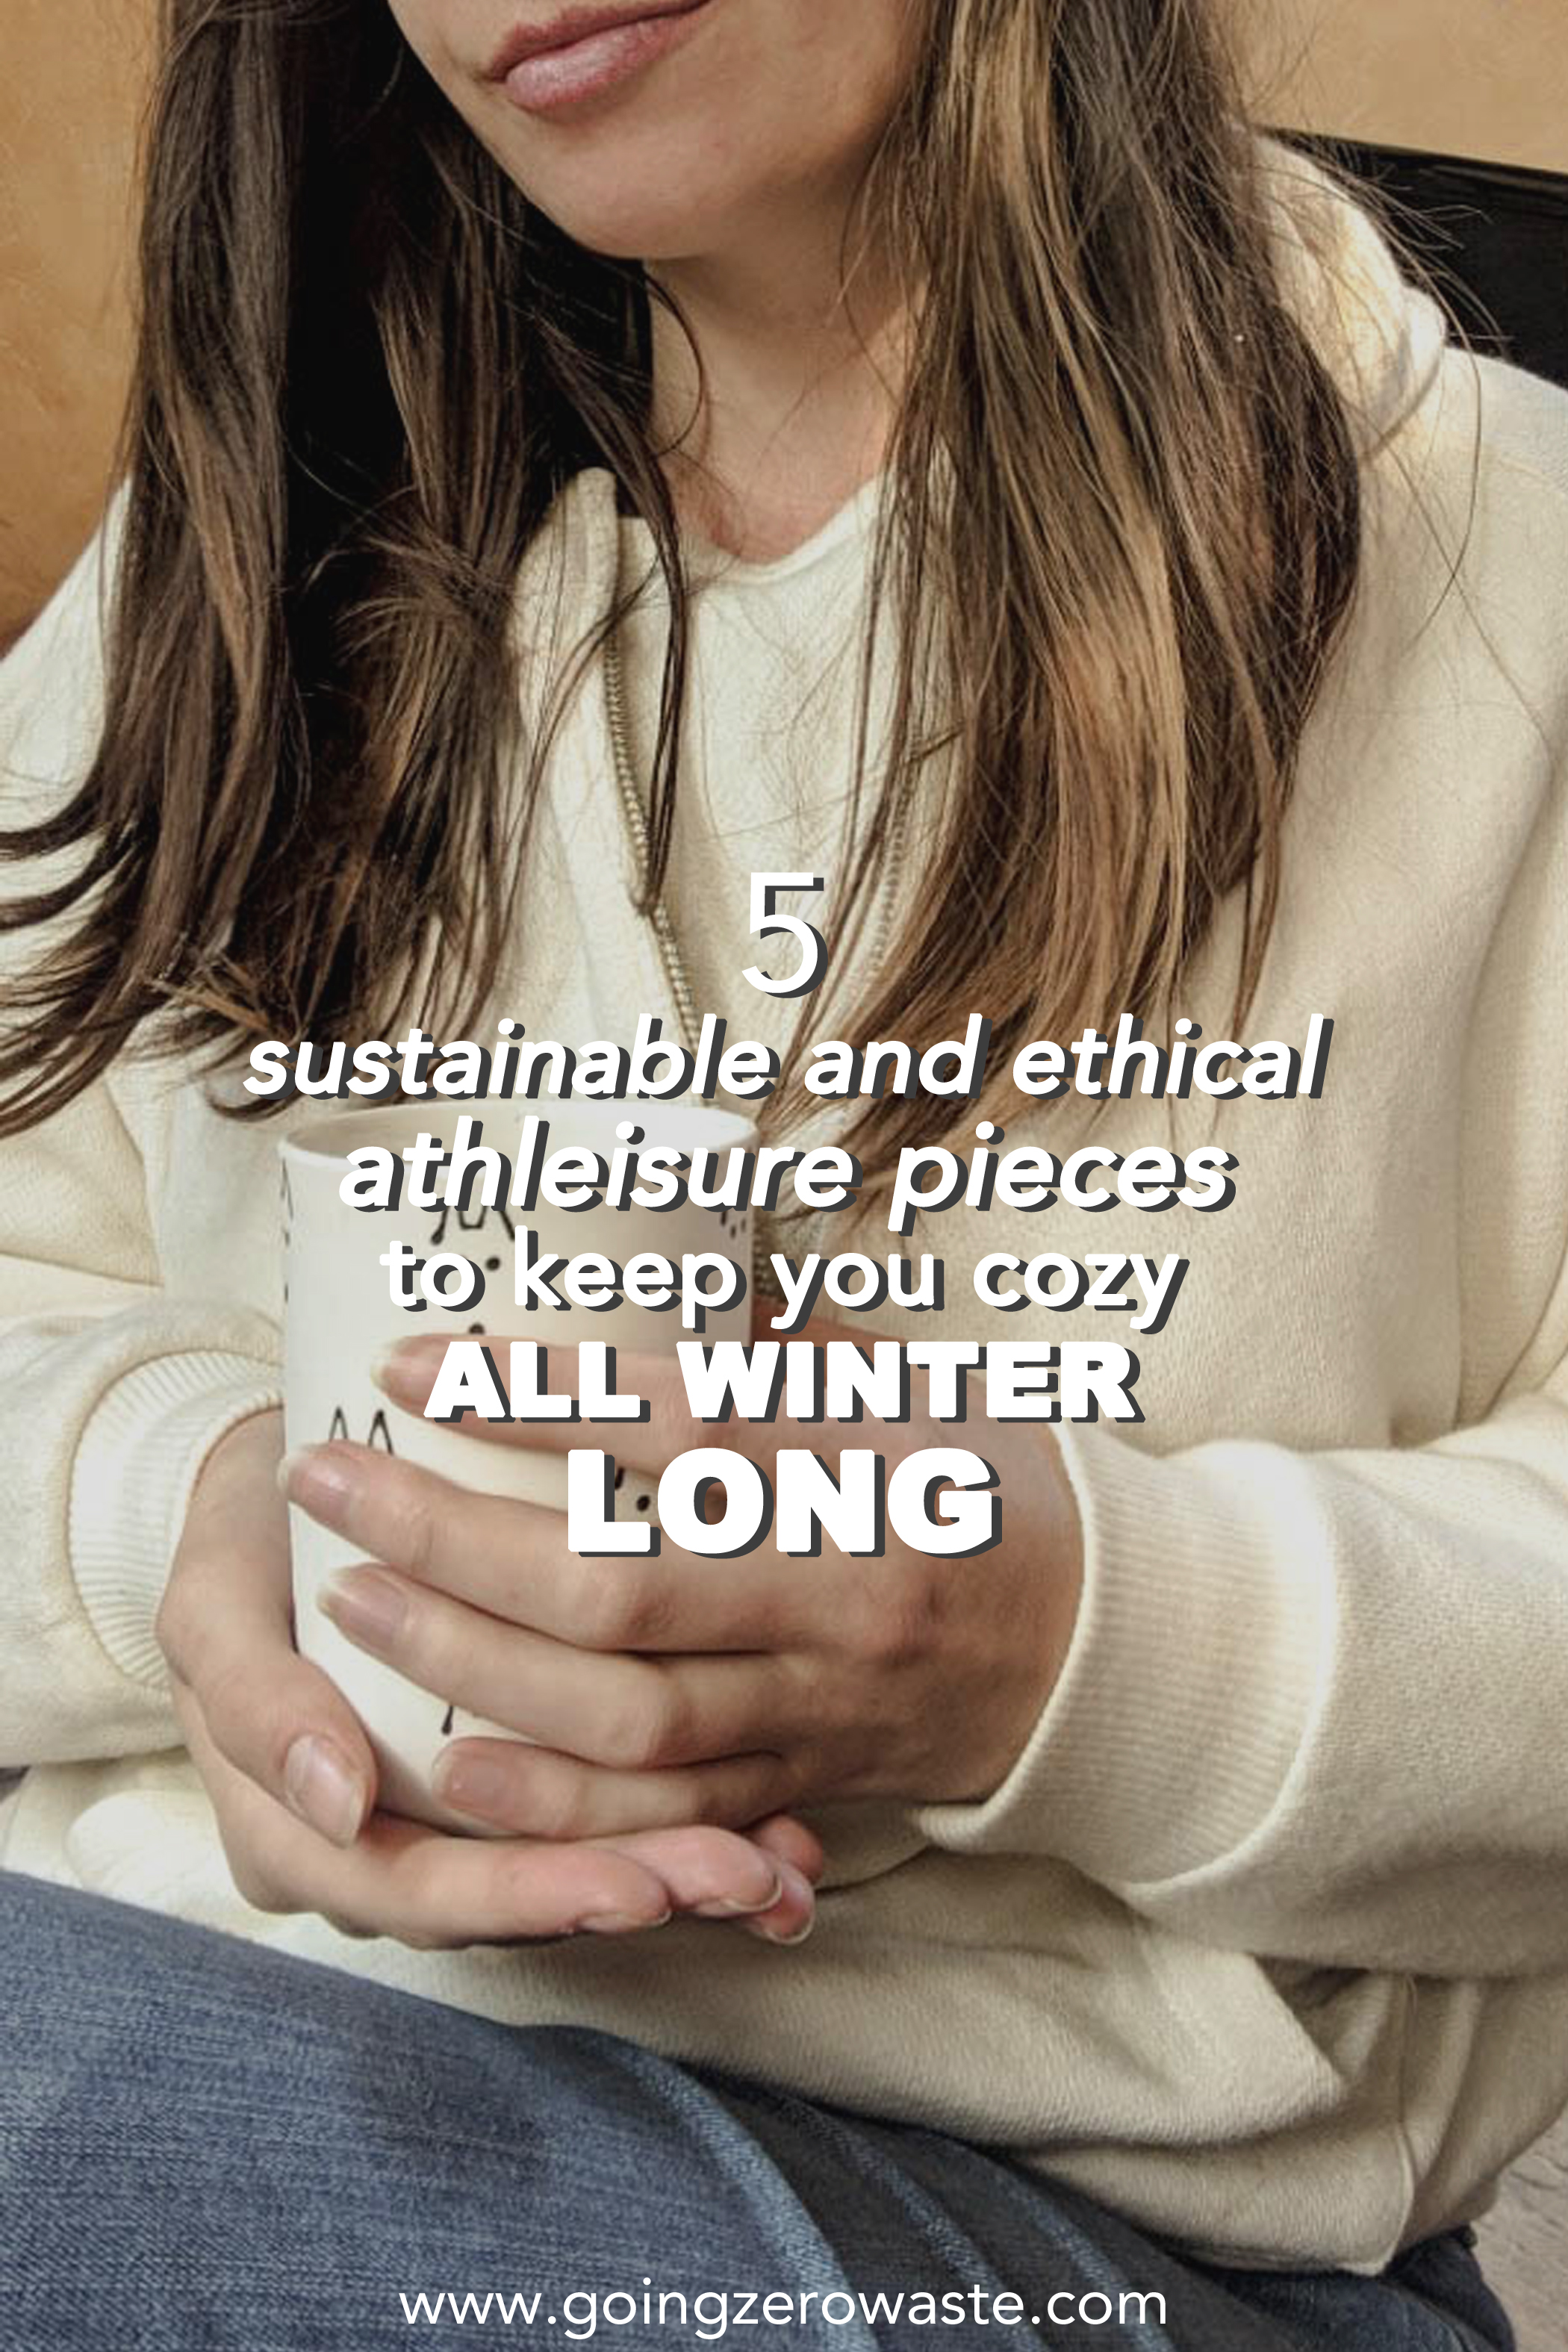 5 sustainable and ethical Athleisure Pieces to Keep You Cozy All Winter Long from www.goingzerowaste.com #ethicalfashion #ecofriendly #sustainablefashion